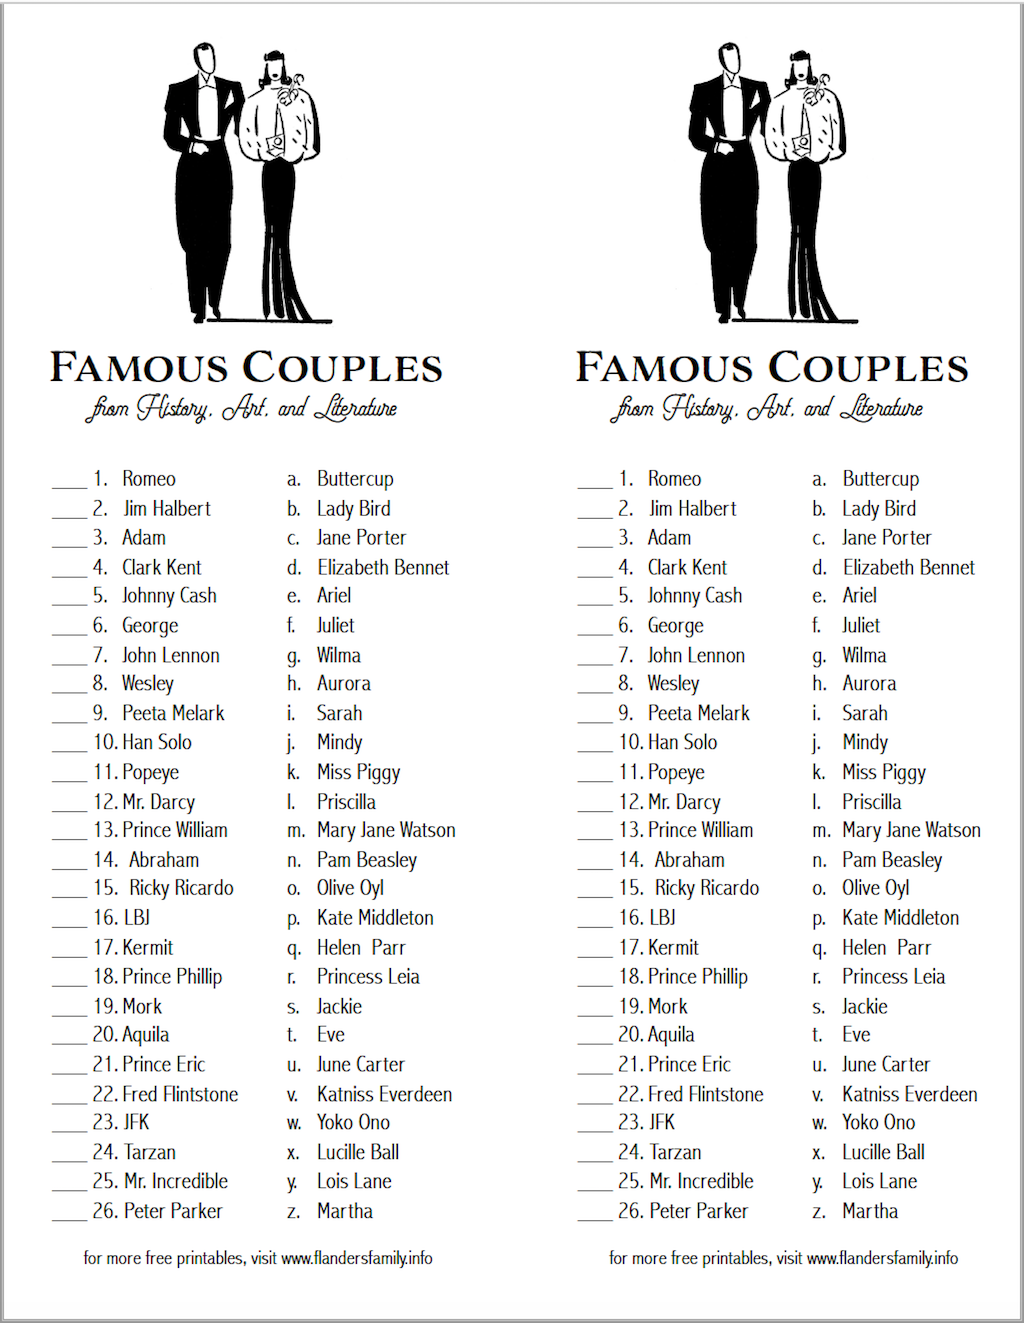 Famous Couples Matching Game Flanders Family Homelife